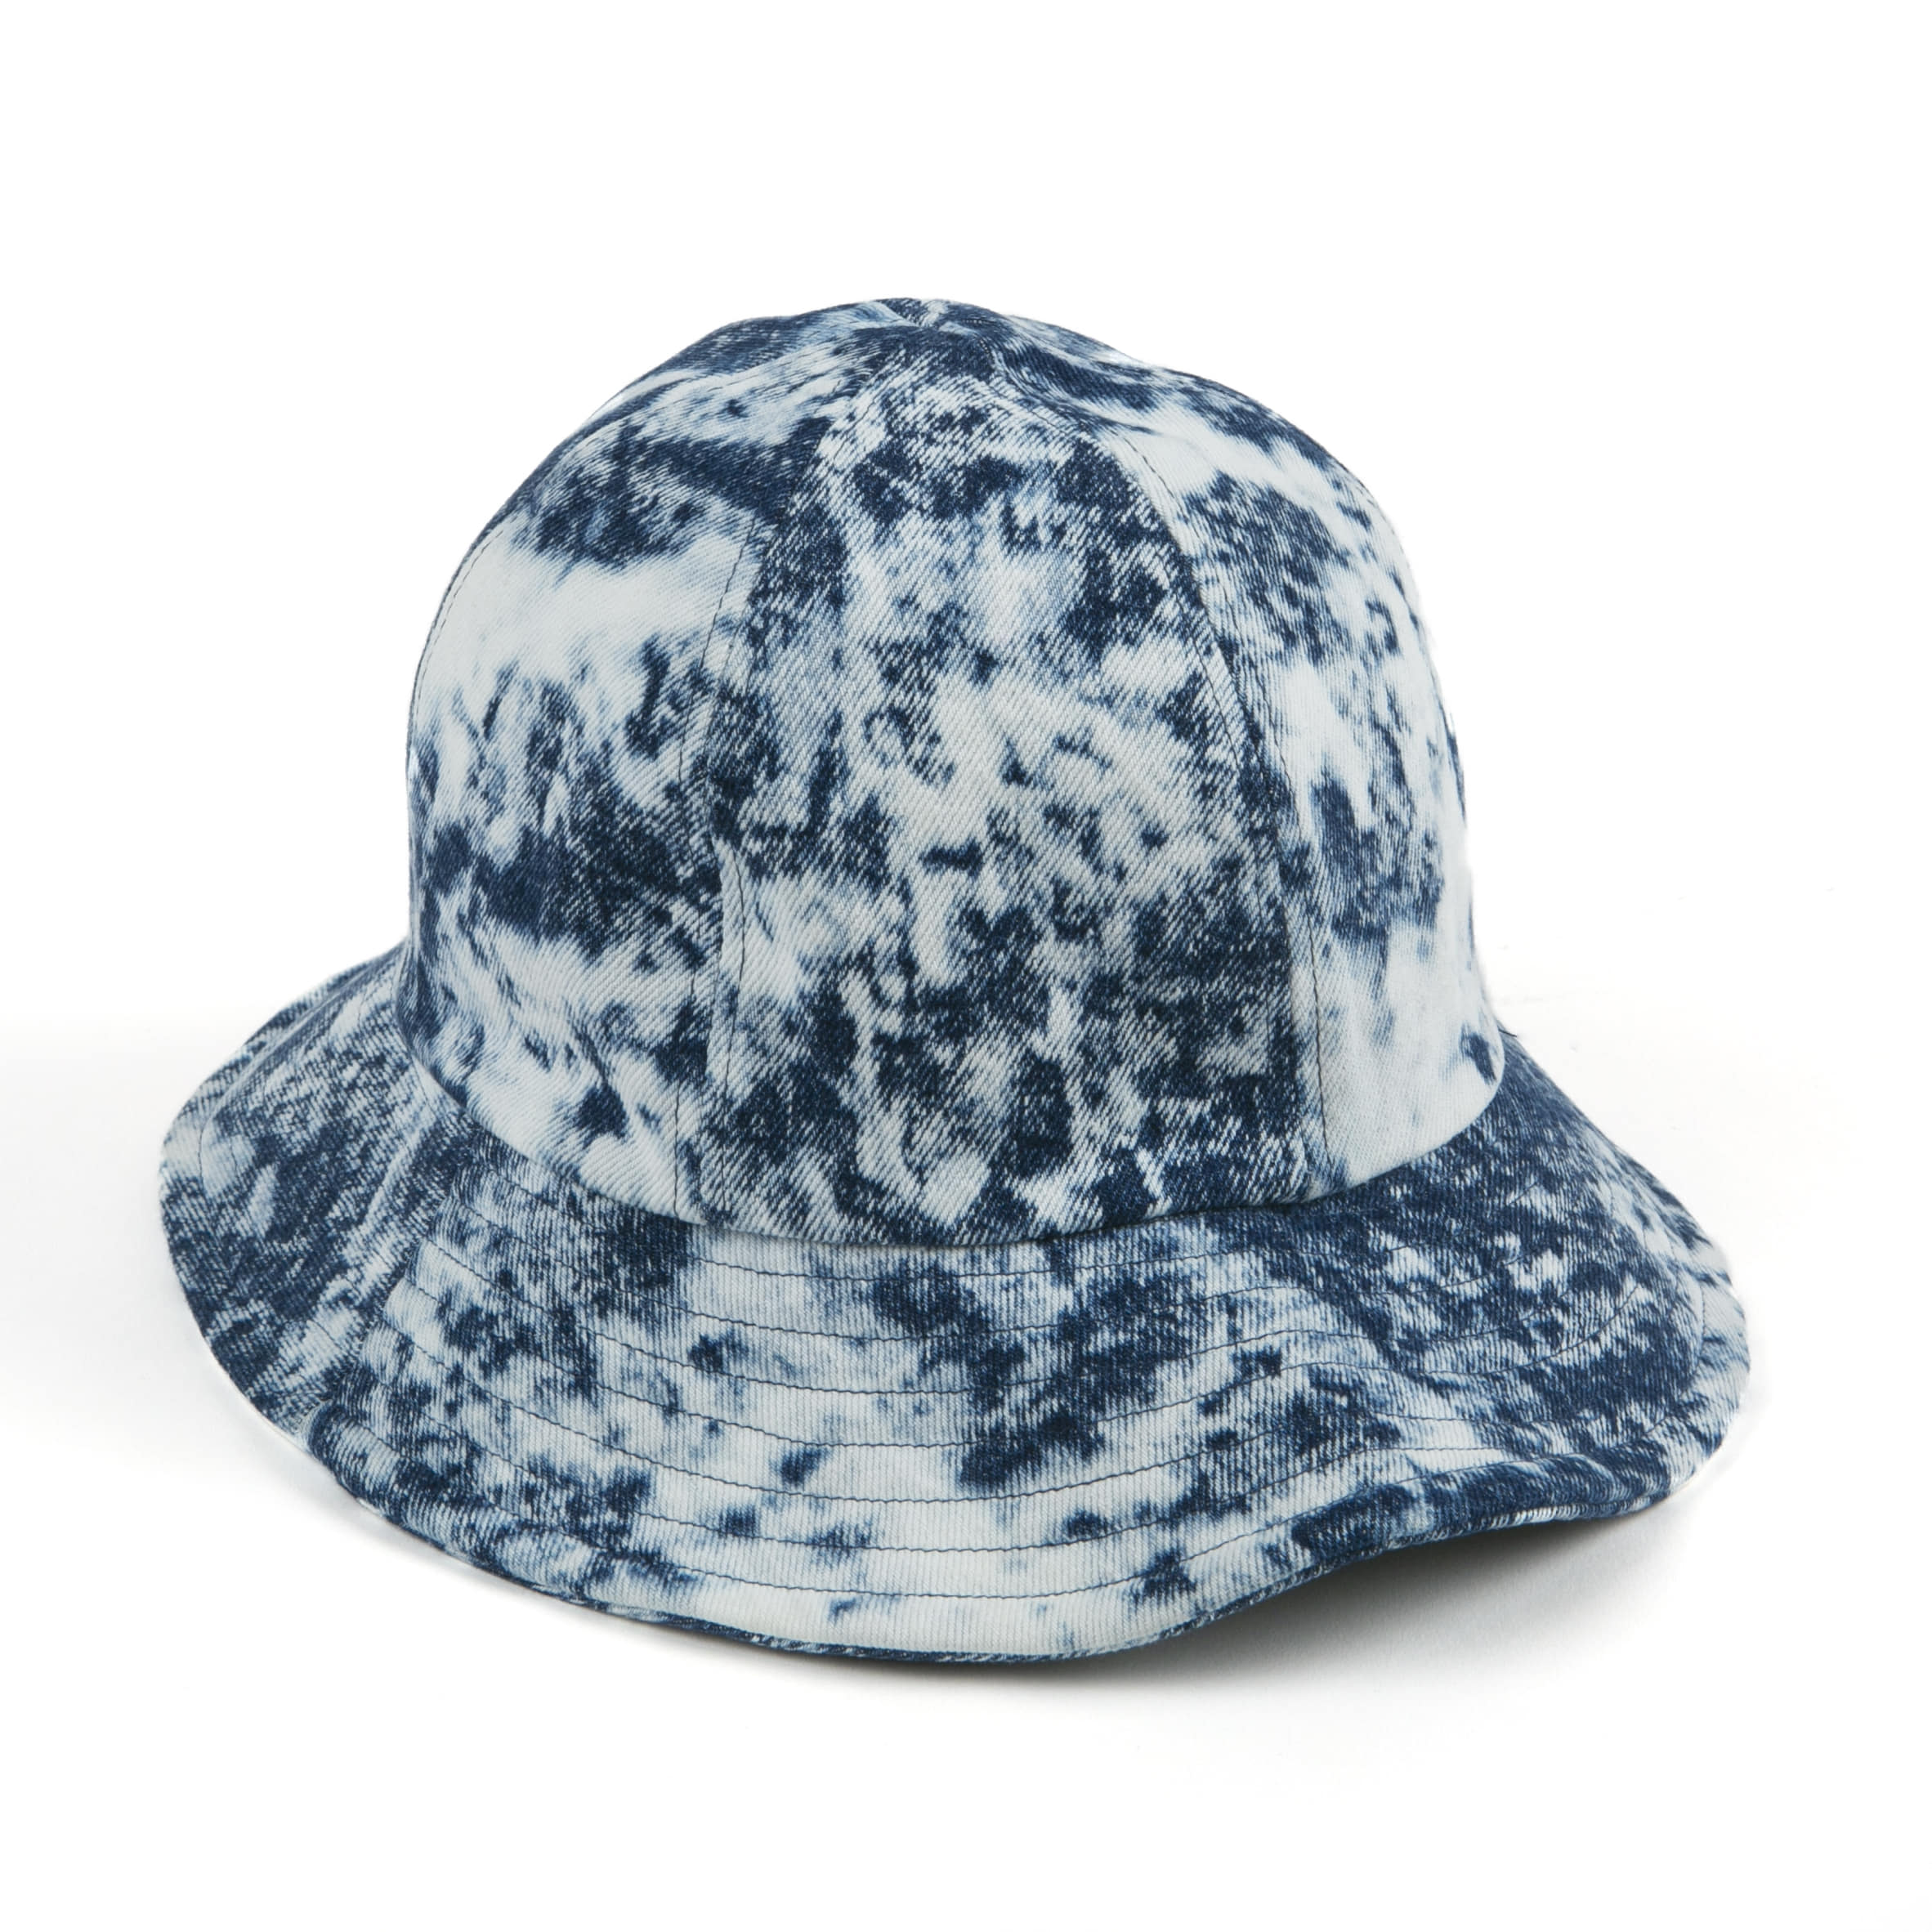 19SS Washing burket hat MXANC9814